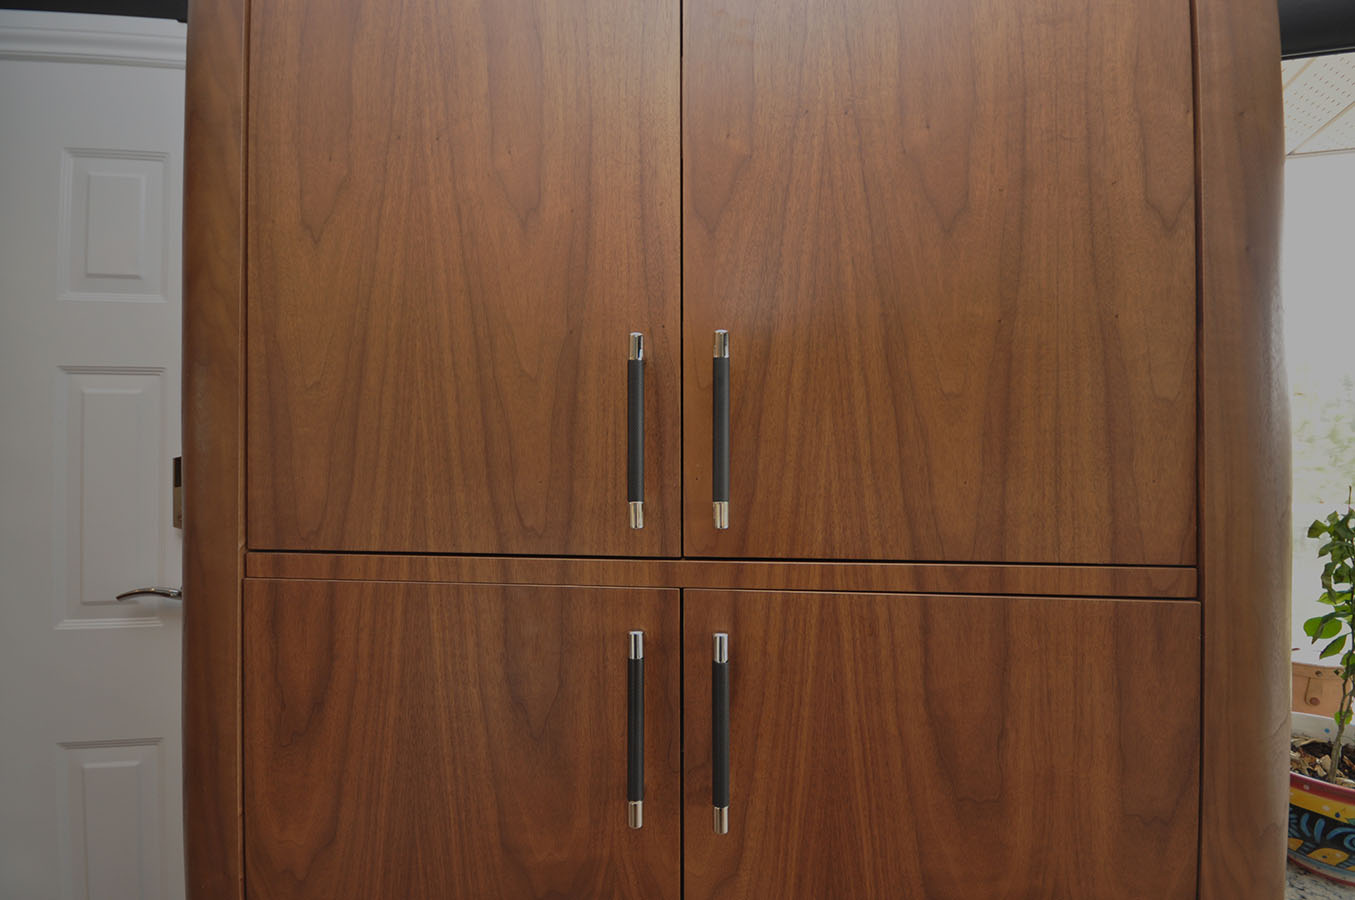 Cabinet doors and finishes 3